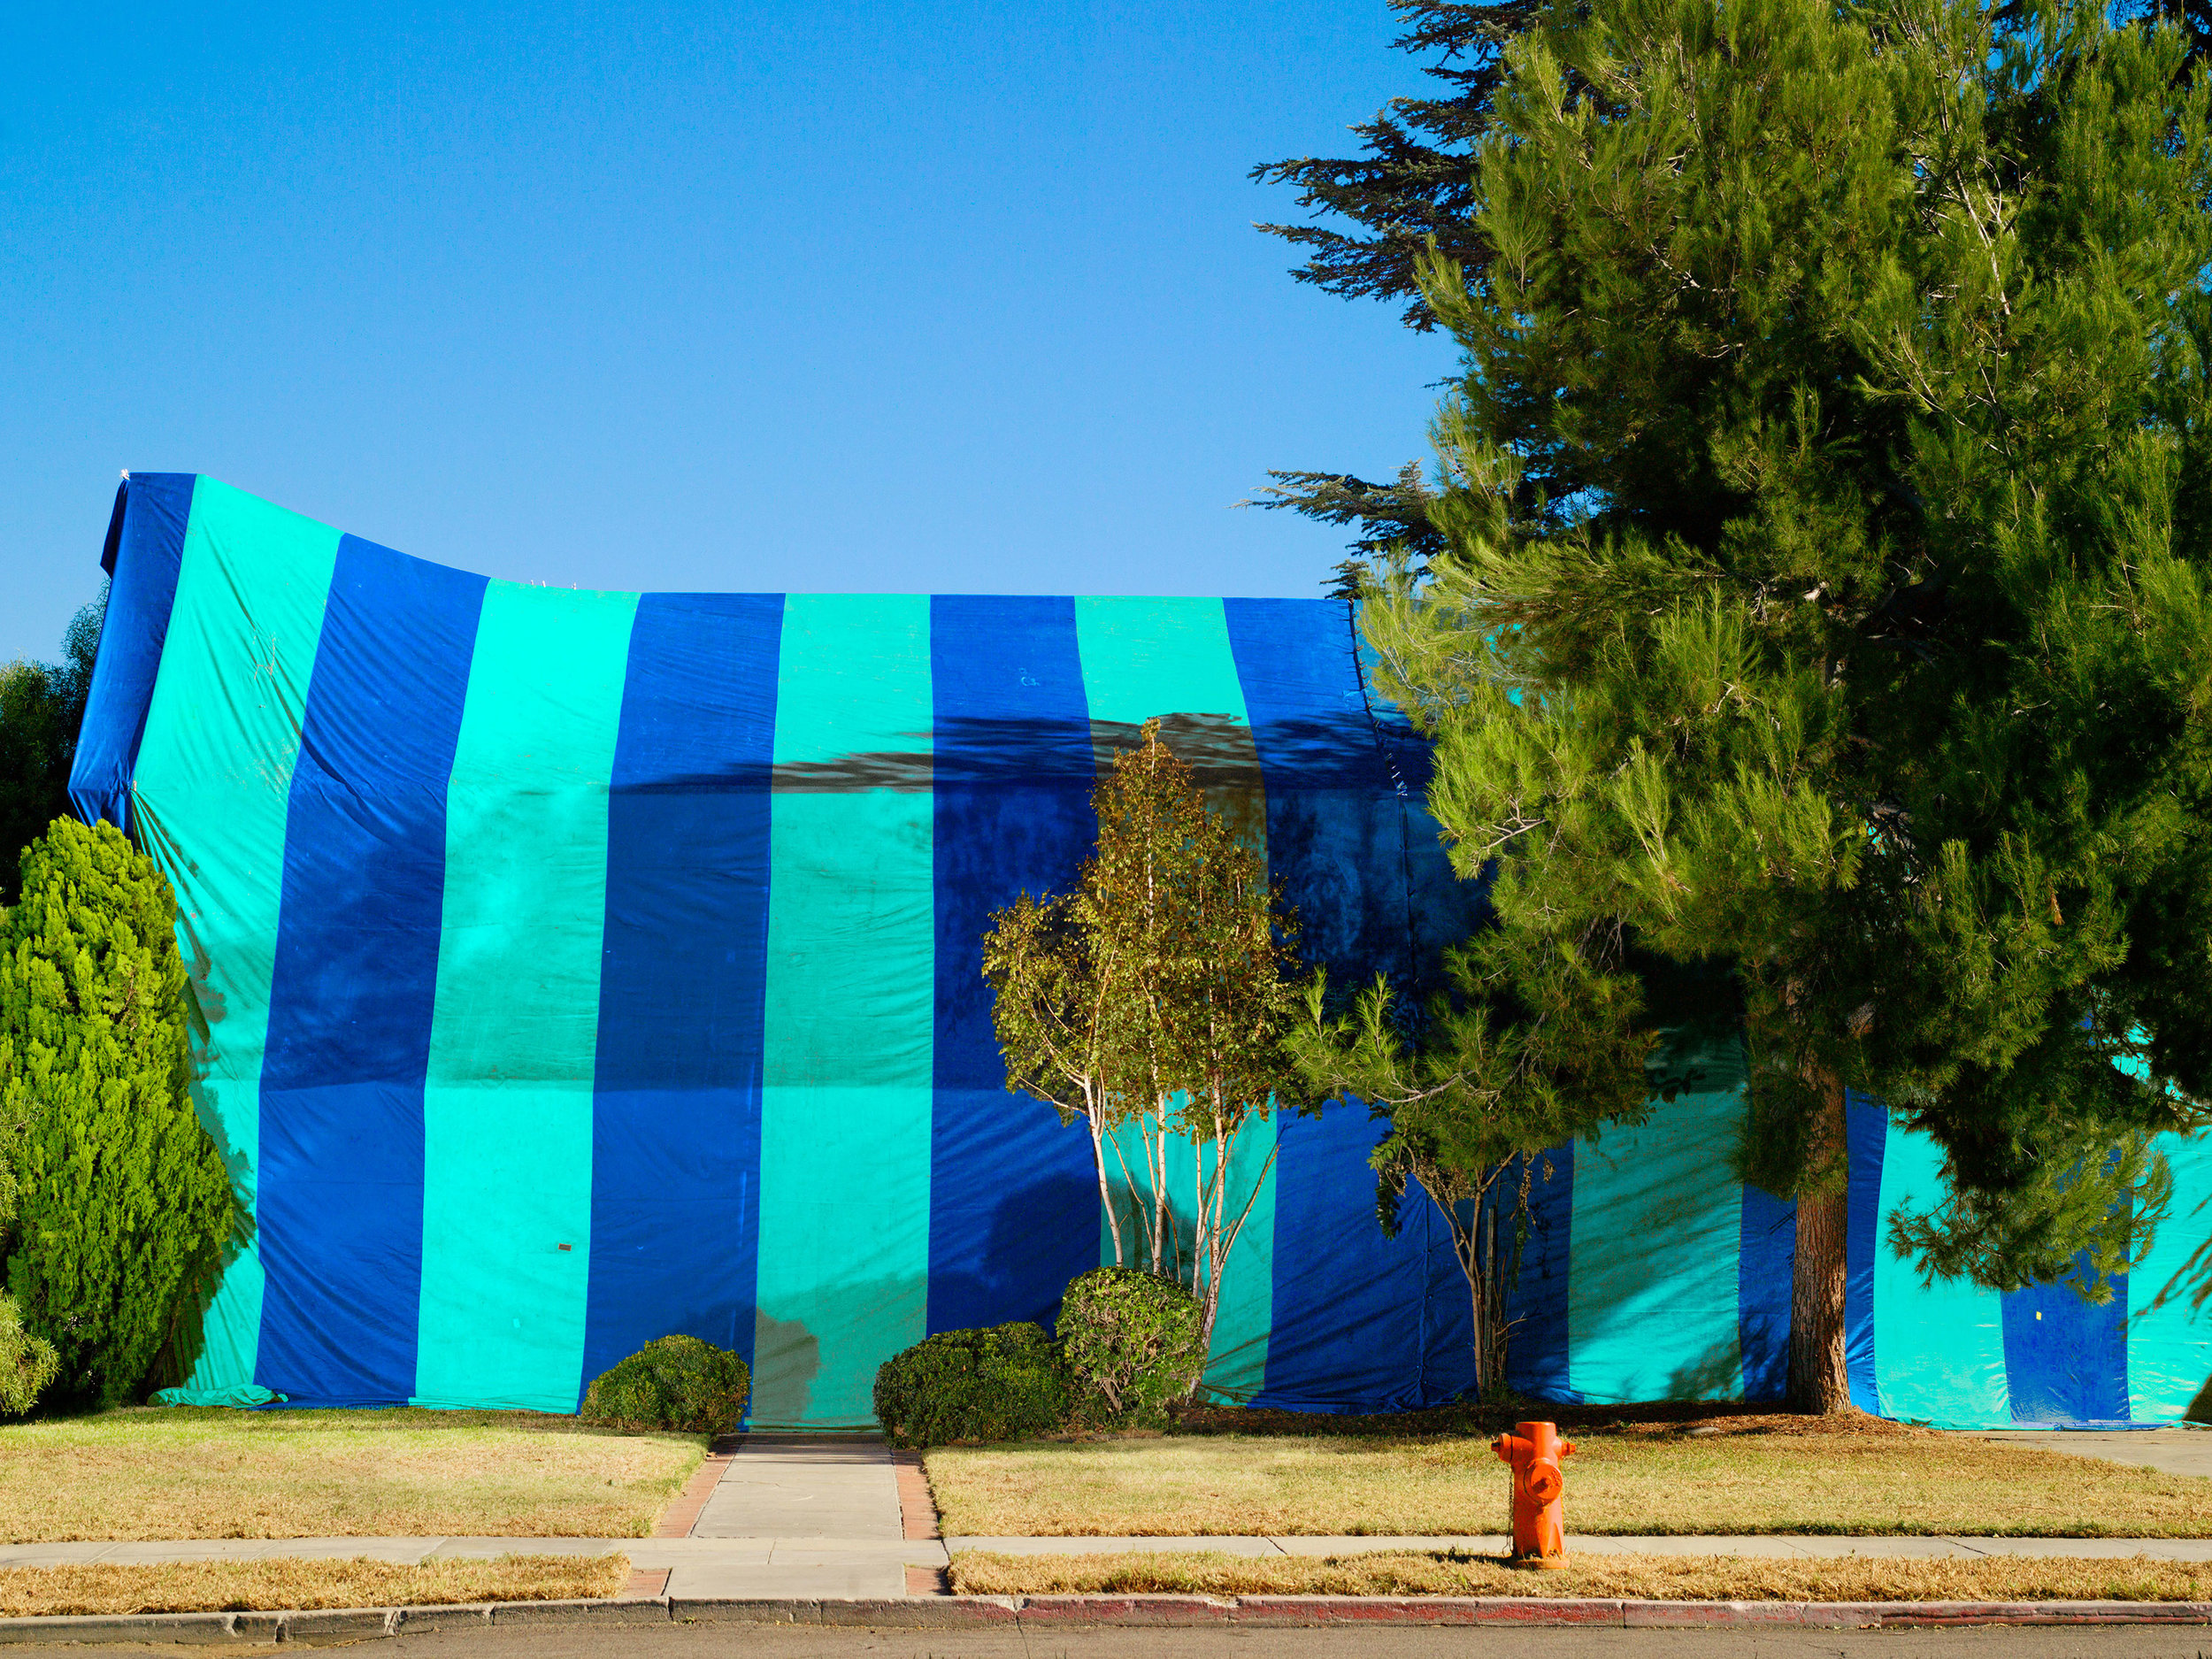 Ramona Rosales,  The Griswold House , 2015  Digital pigment print, 30 x 40 in, edition of 5; 20 x 24 in, edition of 5   Inquire